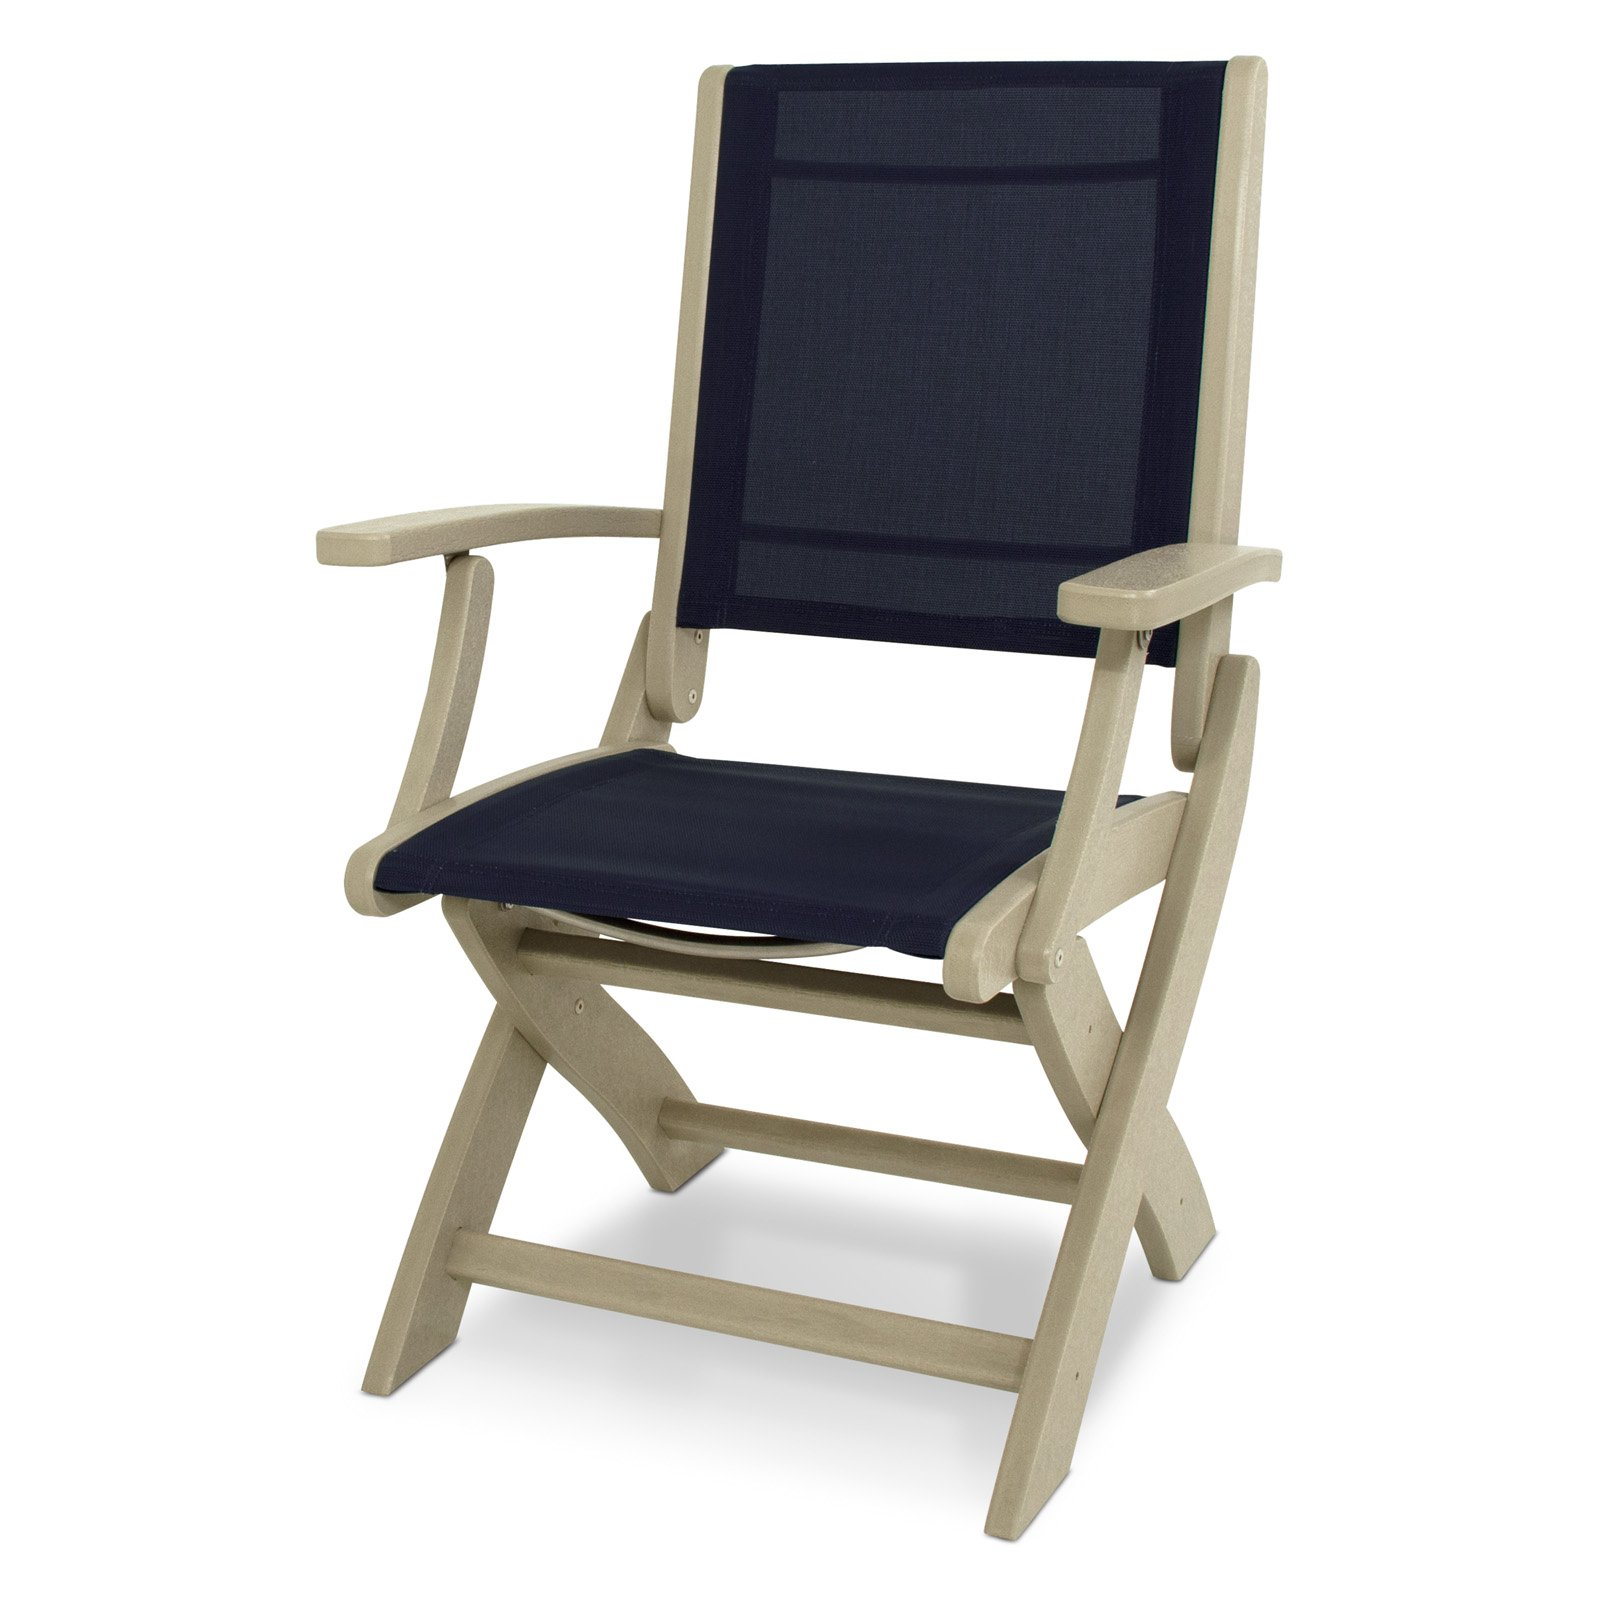 Polywood 9000-SA902 Coastal Sand and Navy Blue Sling Folding Chair